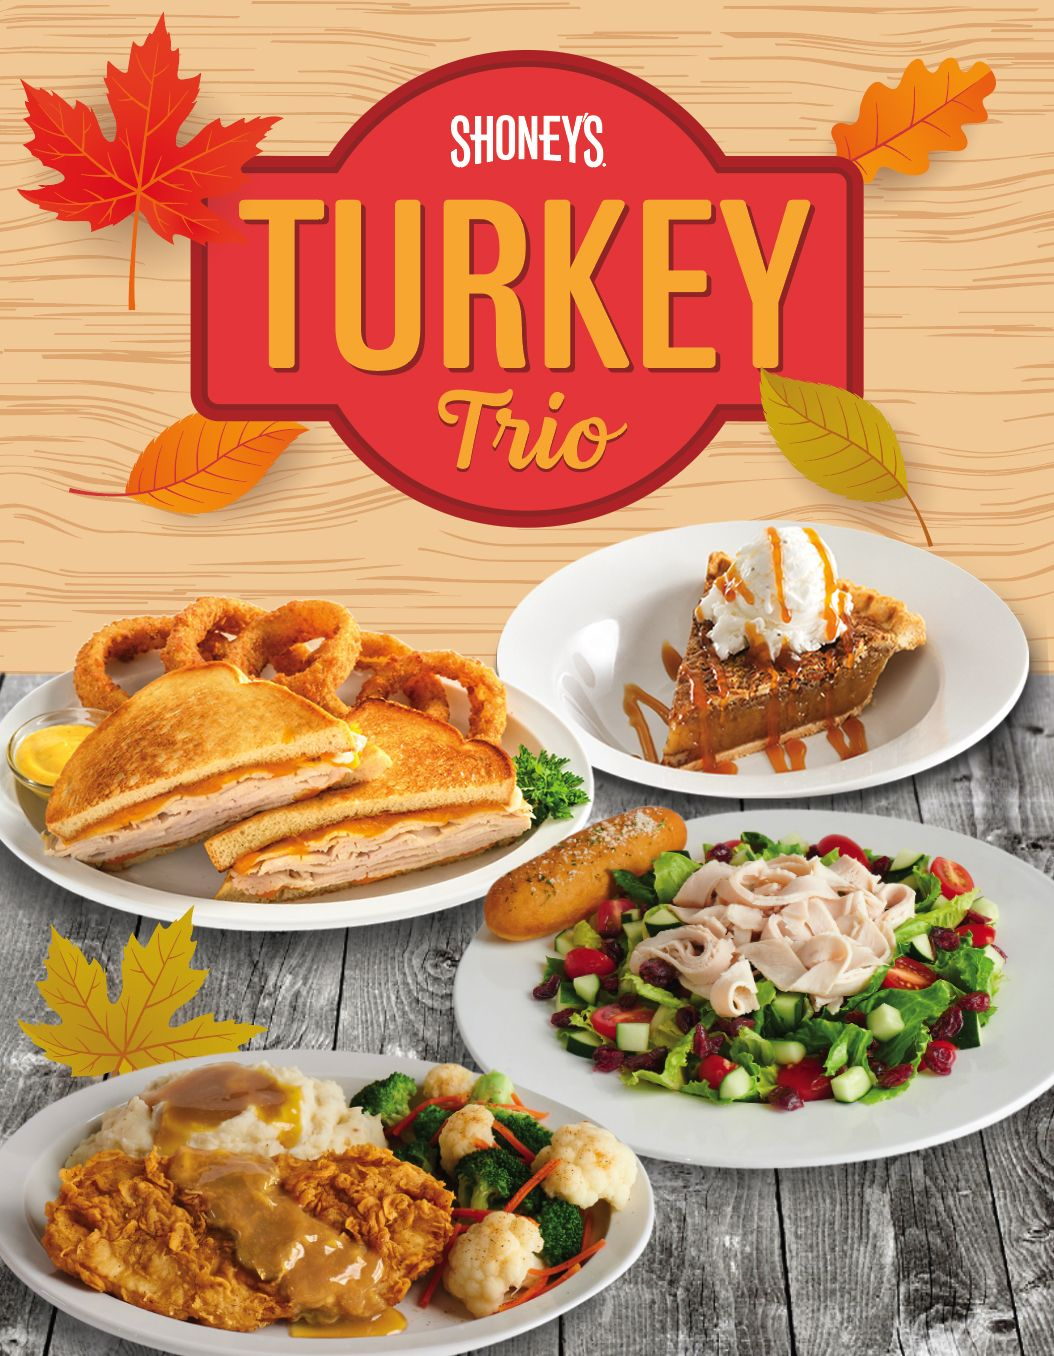 Shoney's Kicks Off Holiday Season with its Turkey Trio Promotion